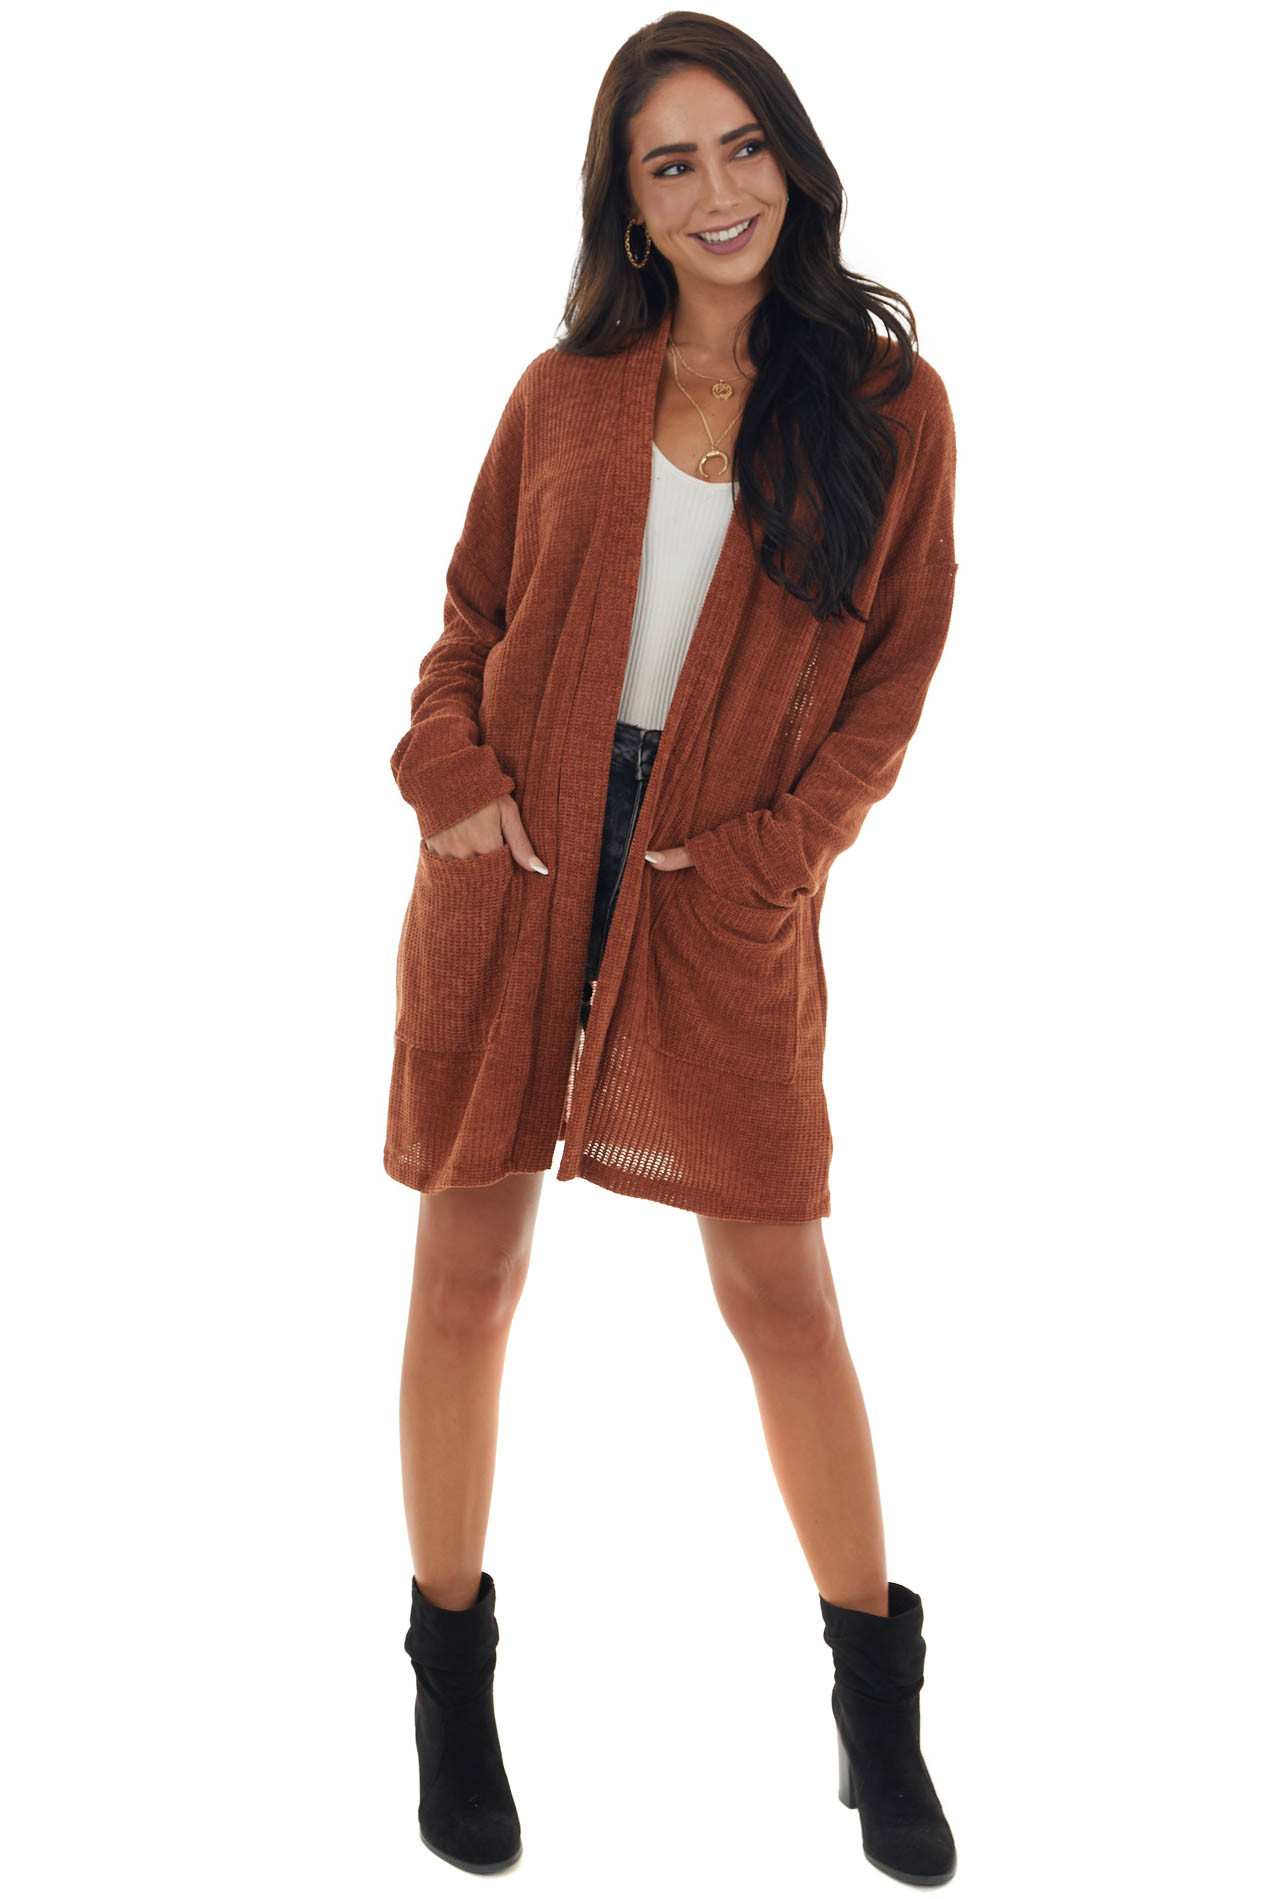 Pumpkin Spice Chenille Cardigan with Pockets